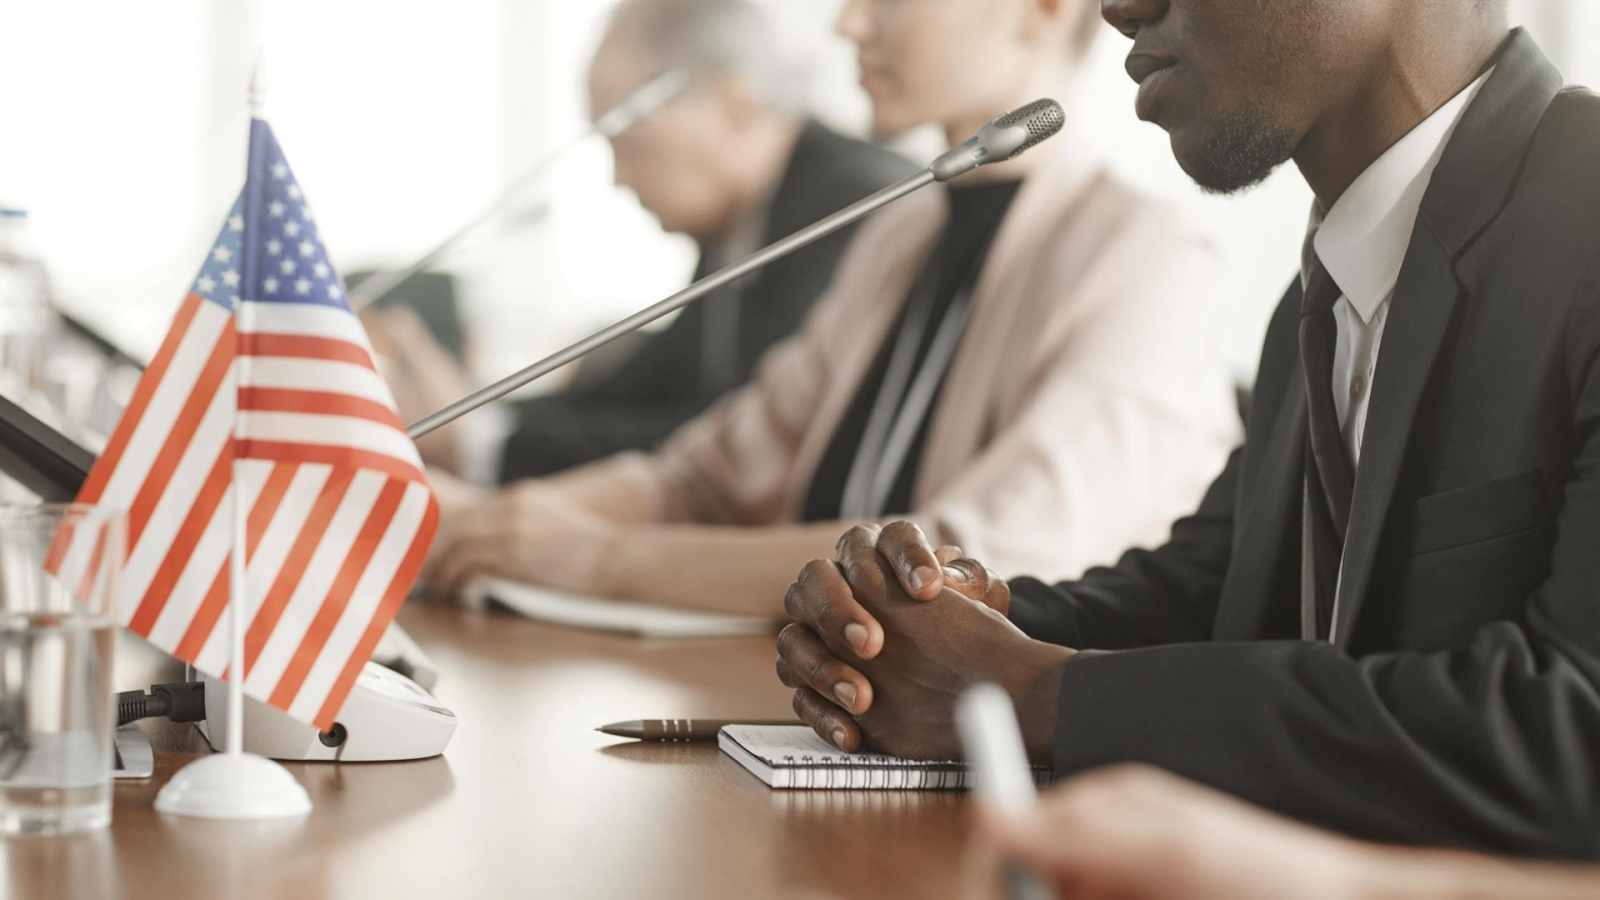 Man presenting at a group meeting with American flag on the table